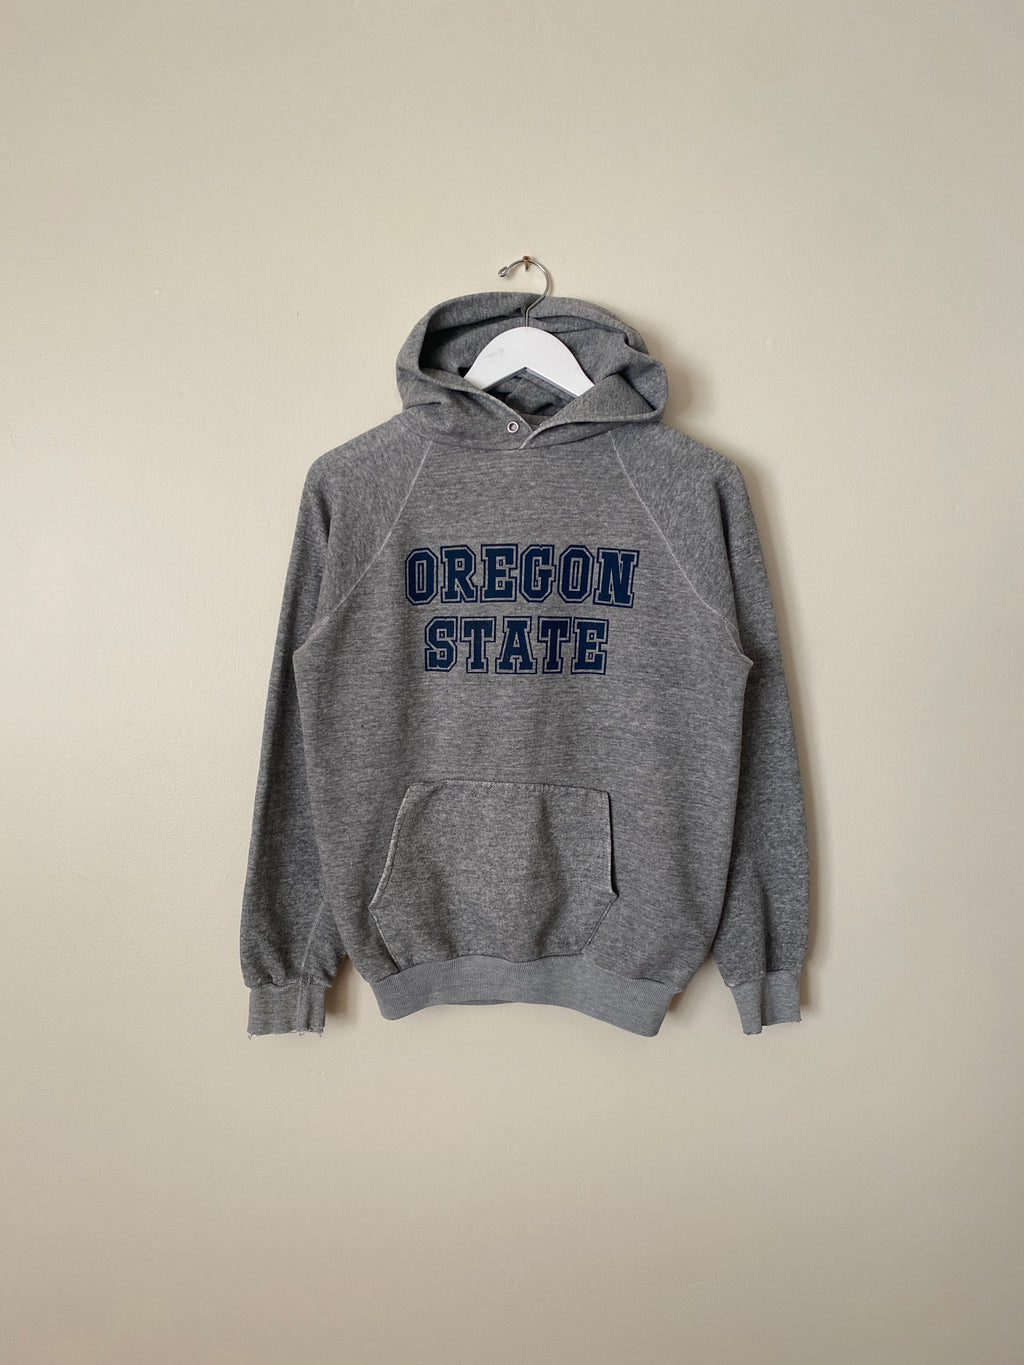 1980's Oregon State Hoodie (M)